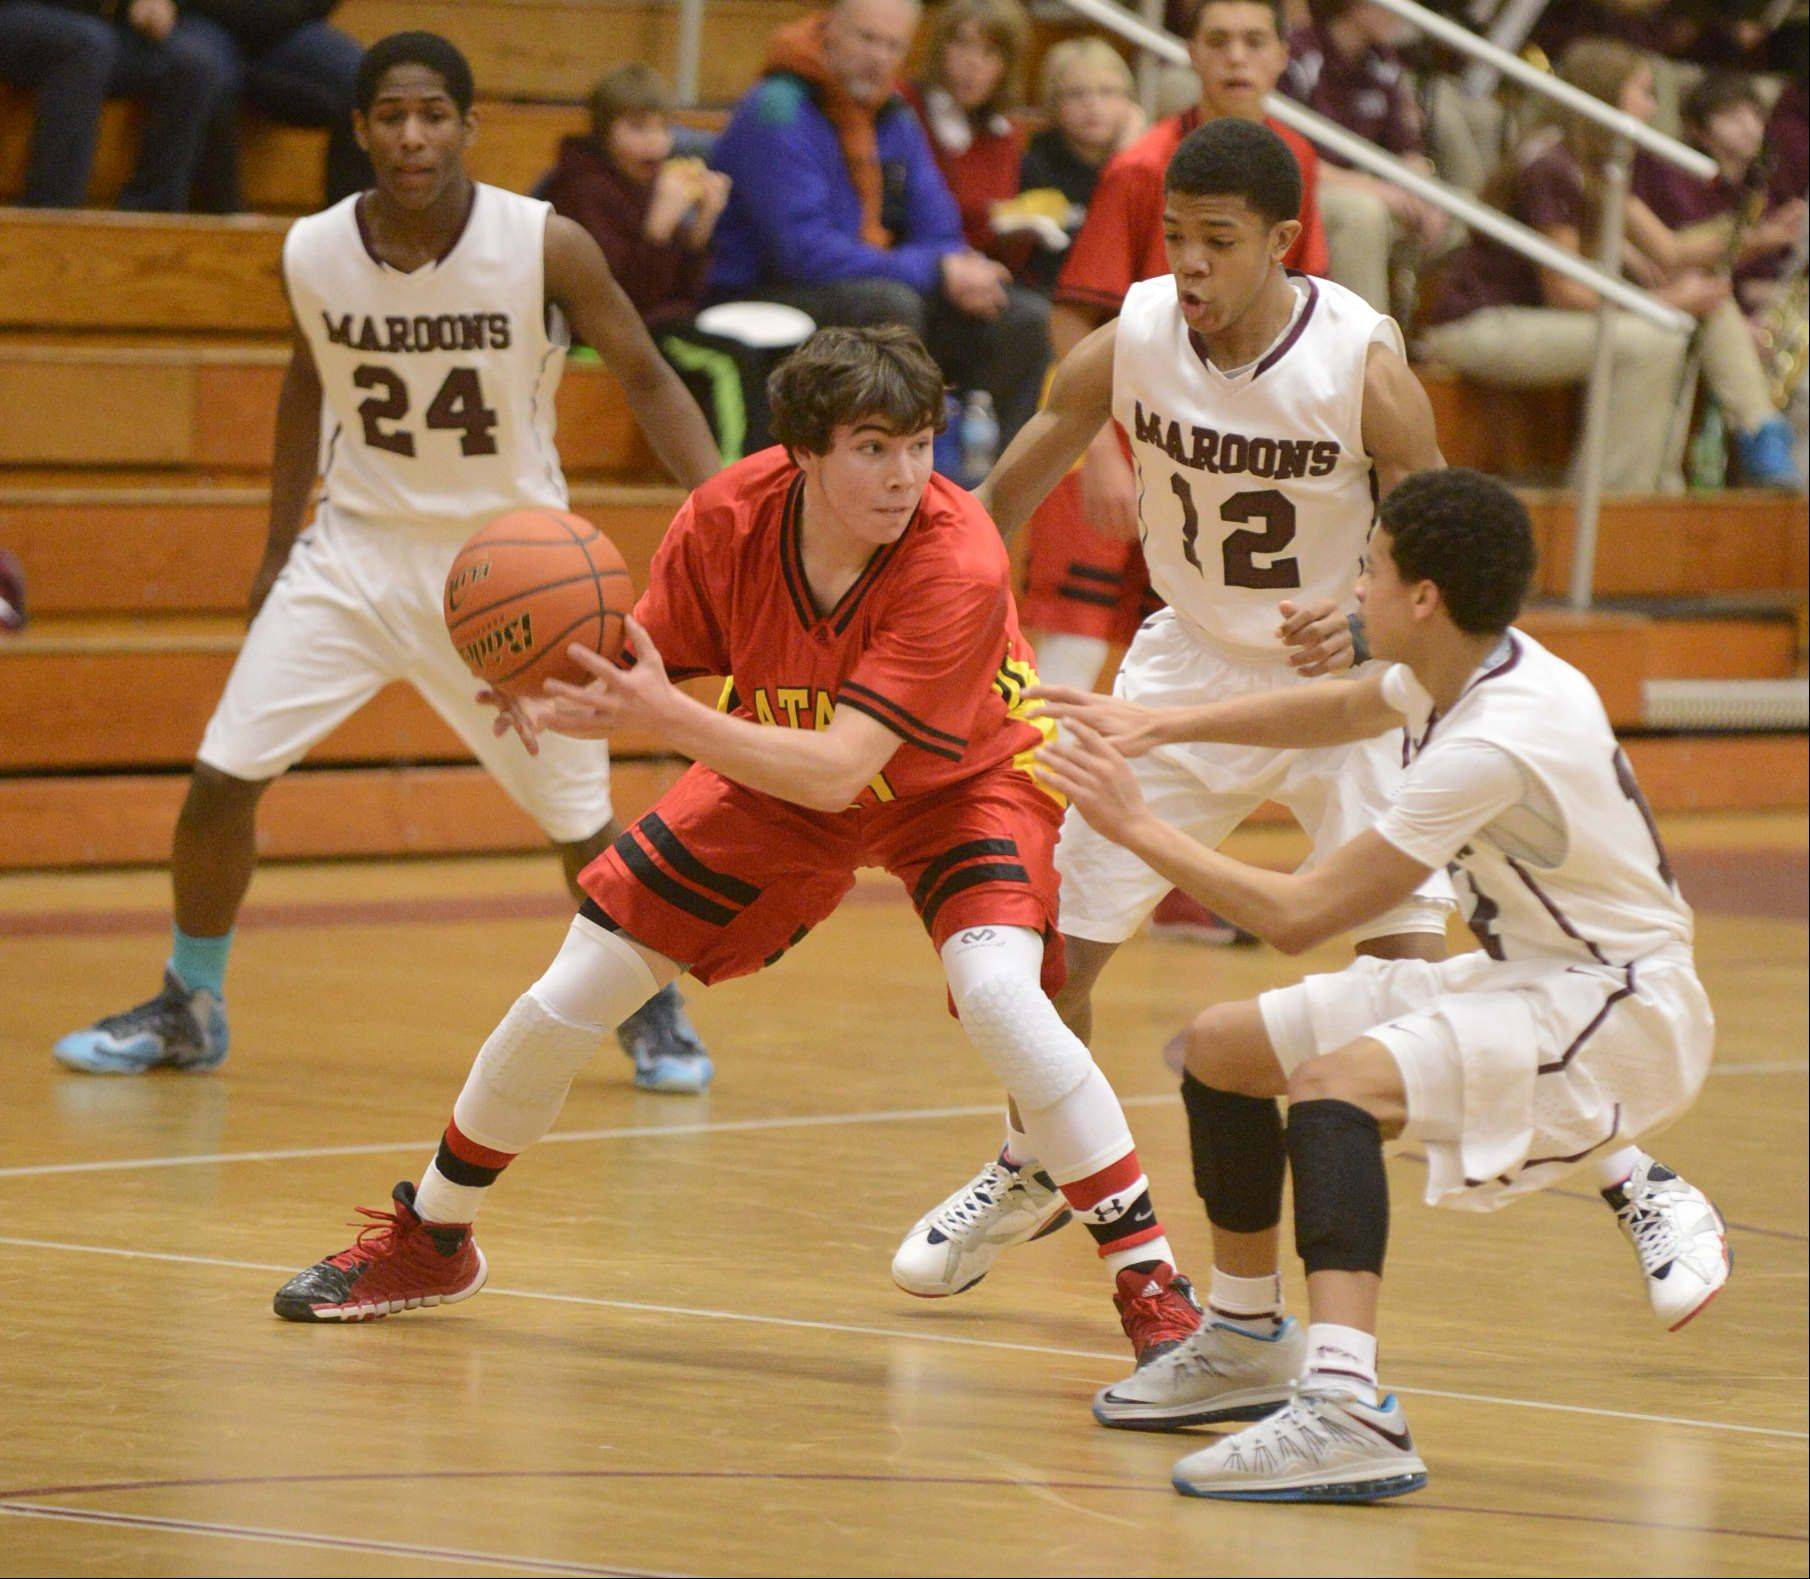 Images: Elgin vs. Batavia boys basketball